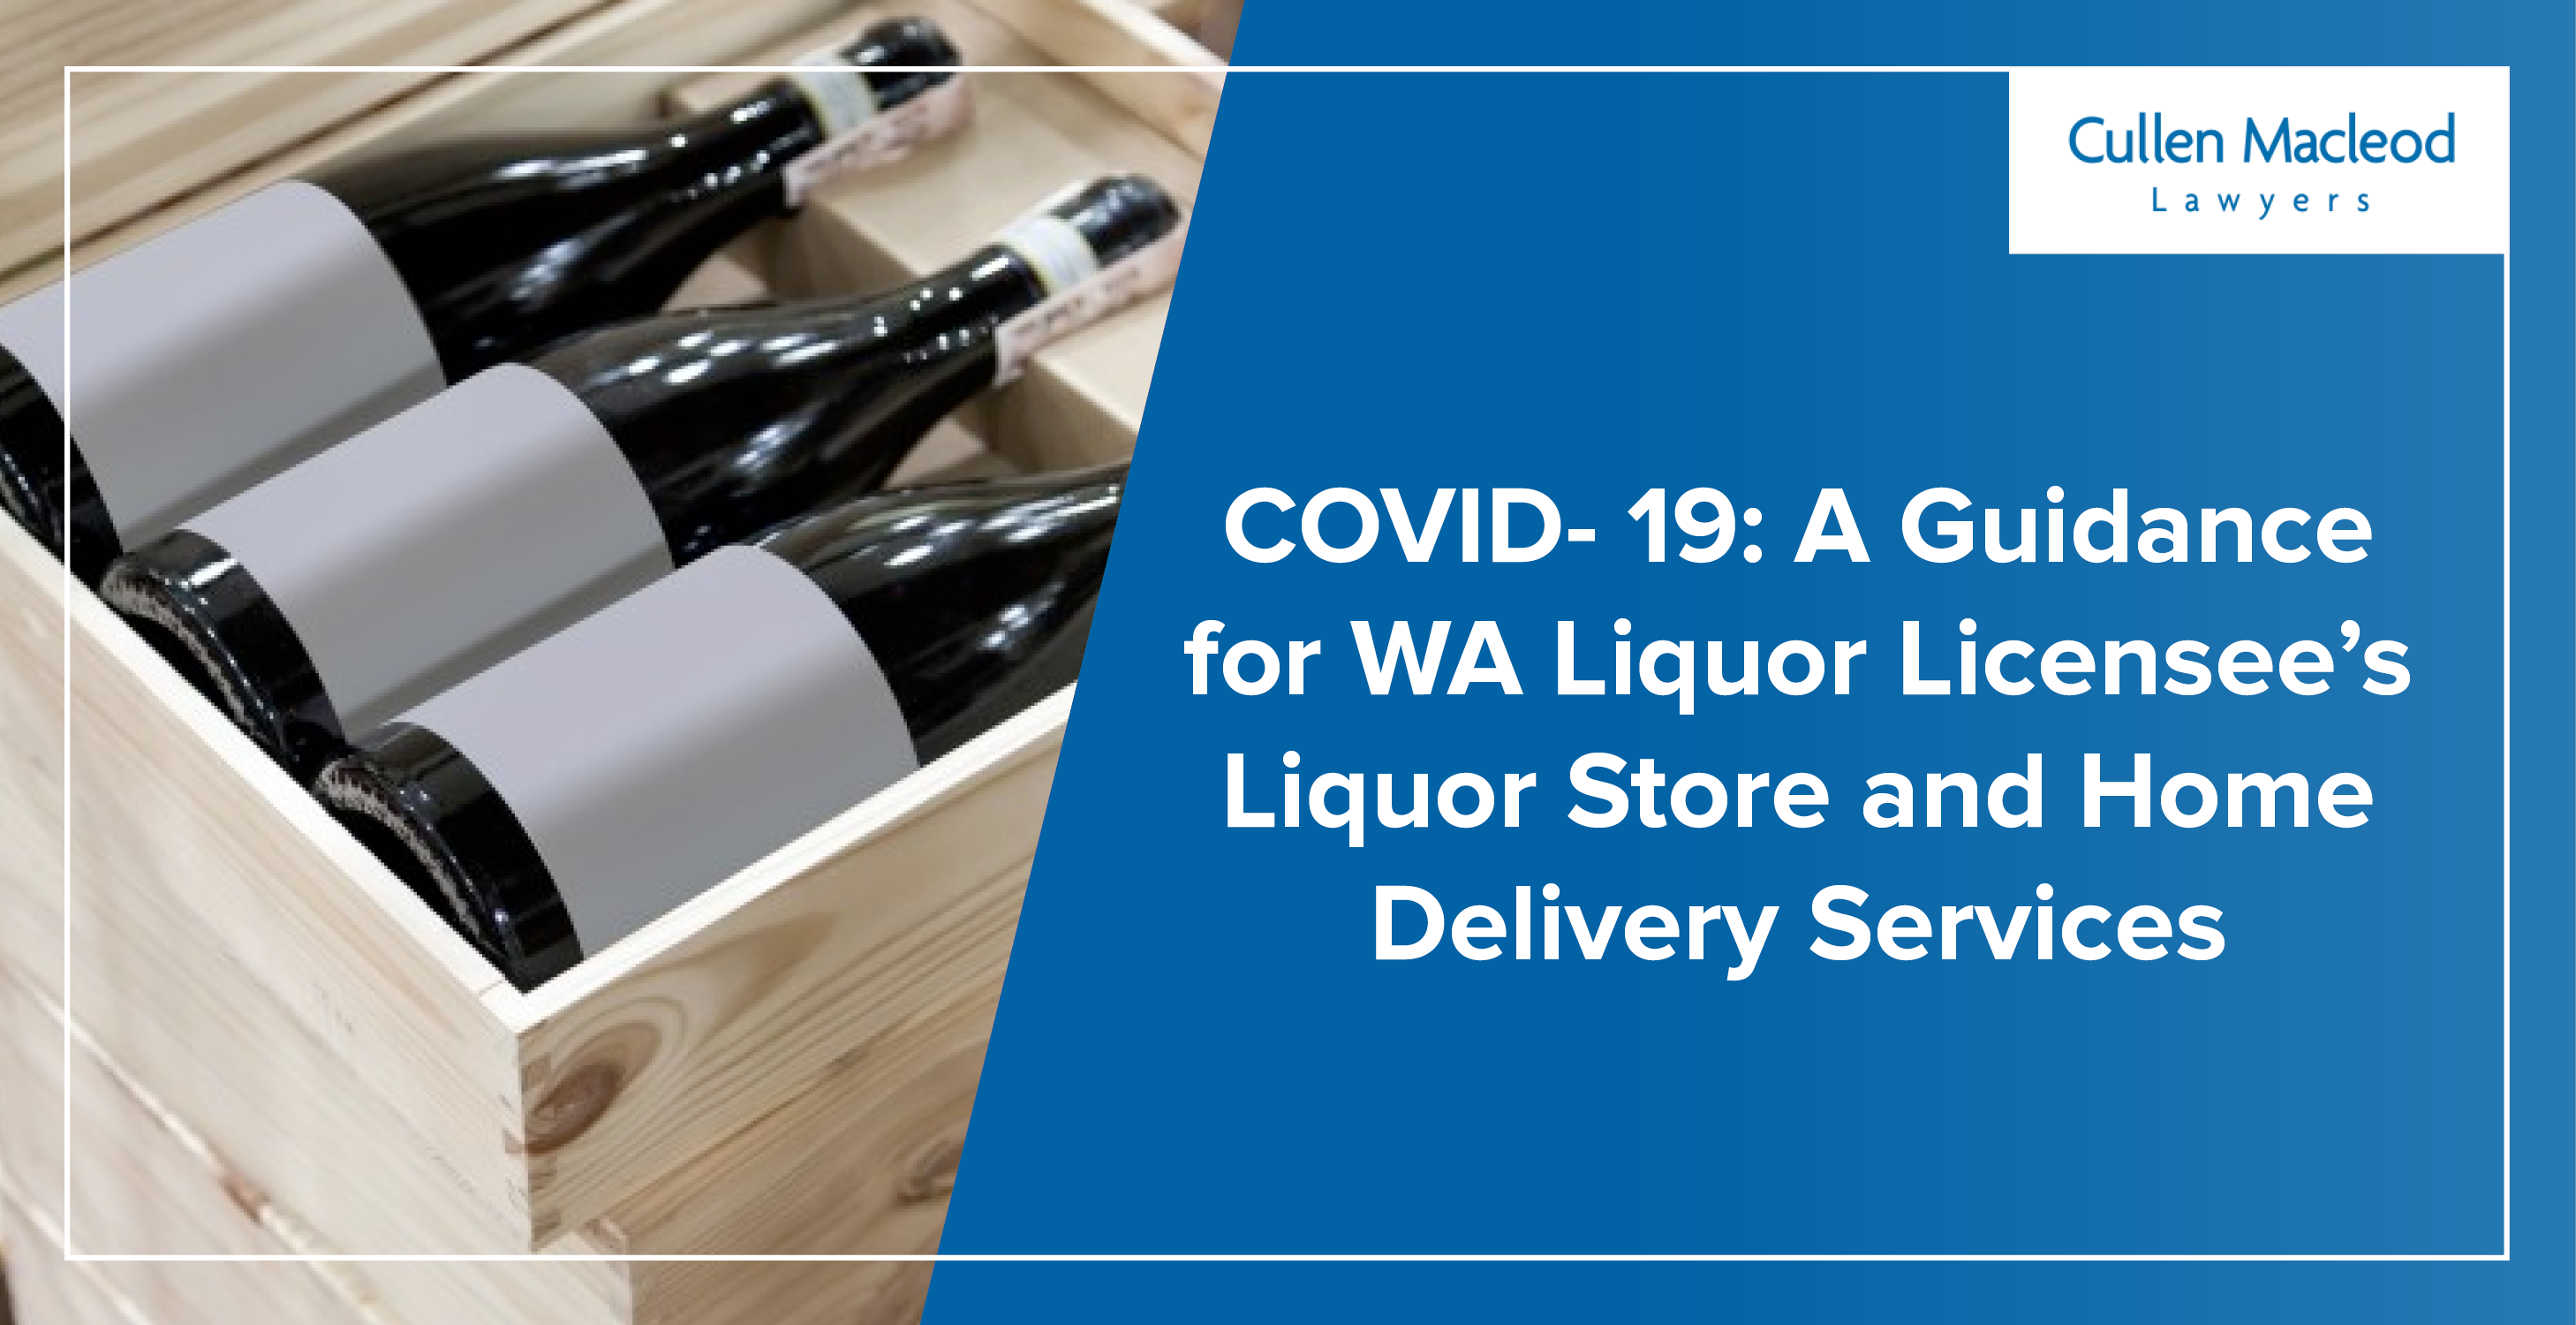 cullen-macleod-blog-feature-image-wa-liquor-licensee-services-covid-19